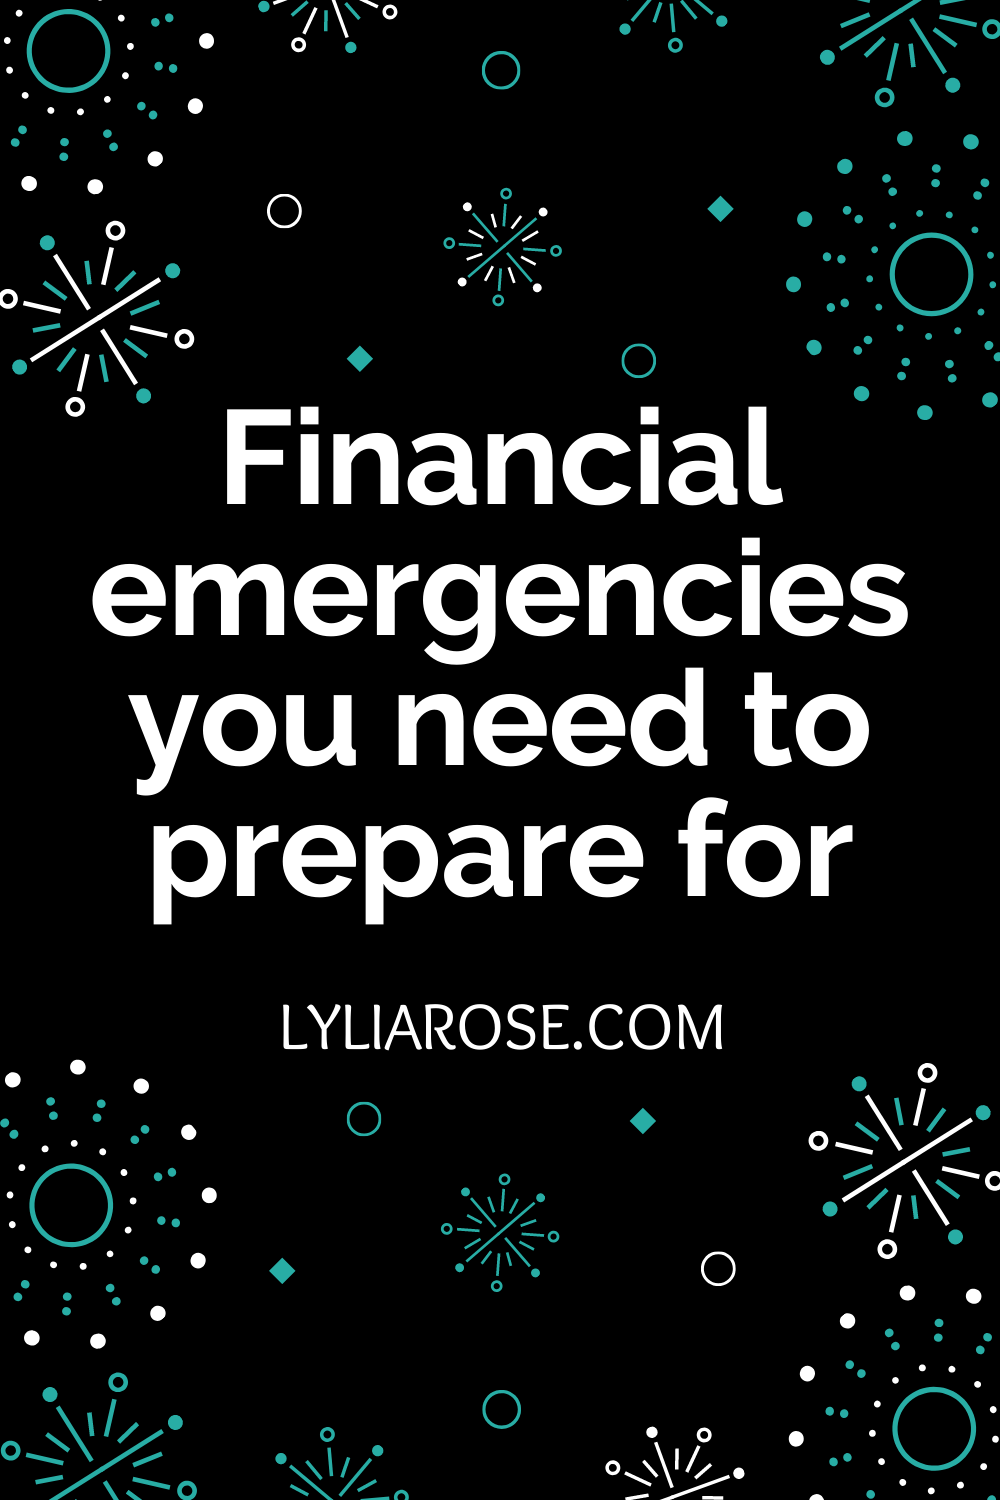 Financial emergencies you need to prepare for (1)